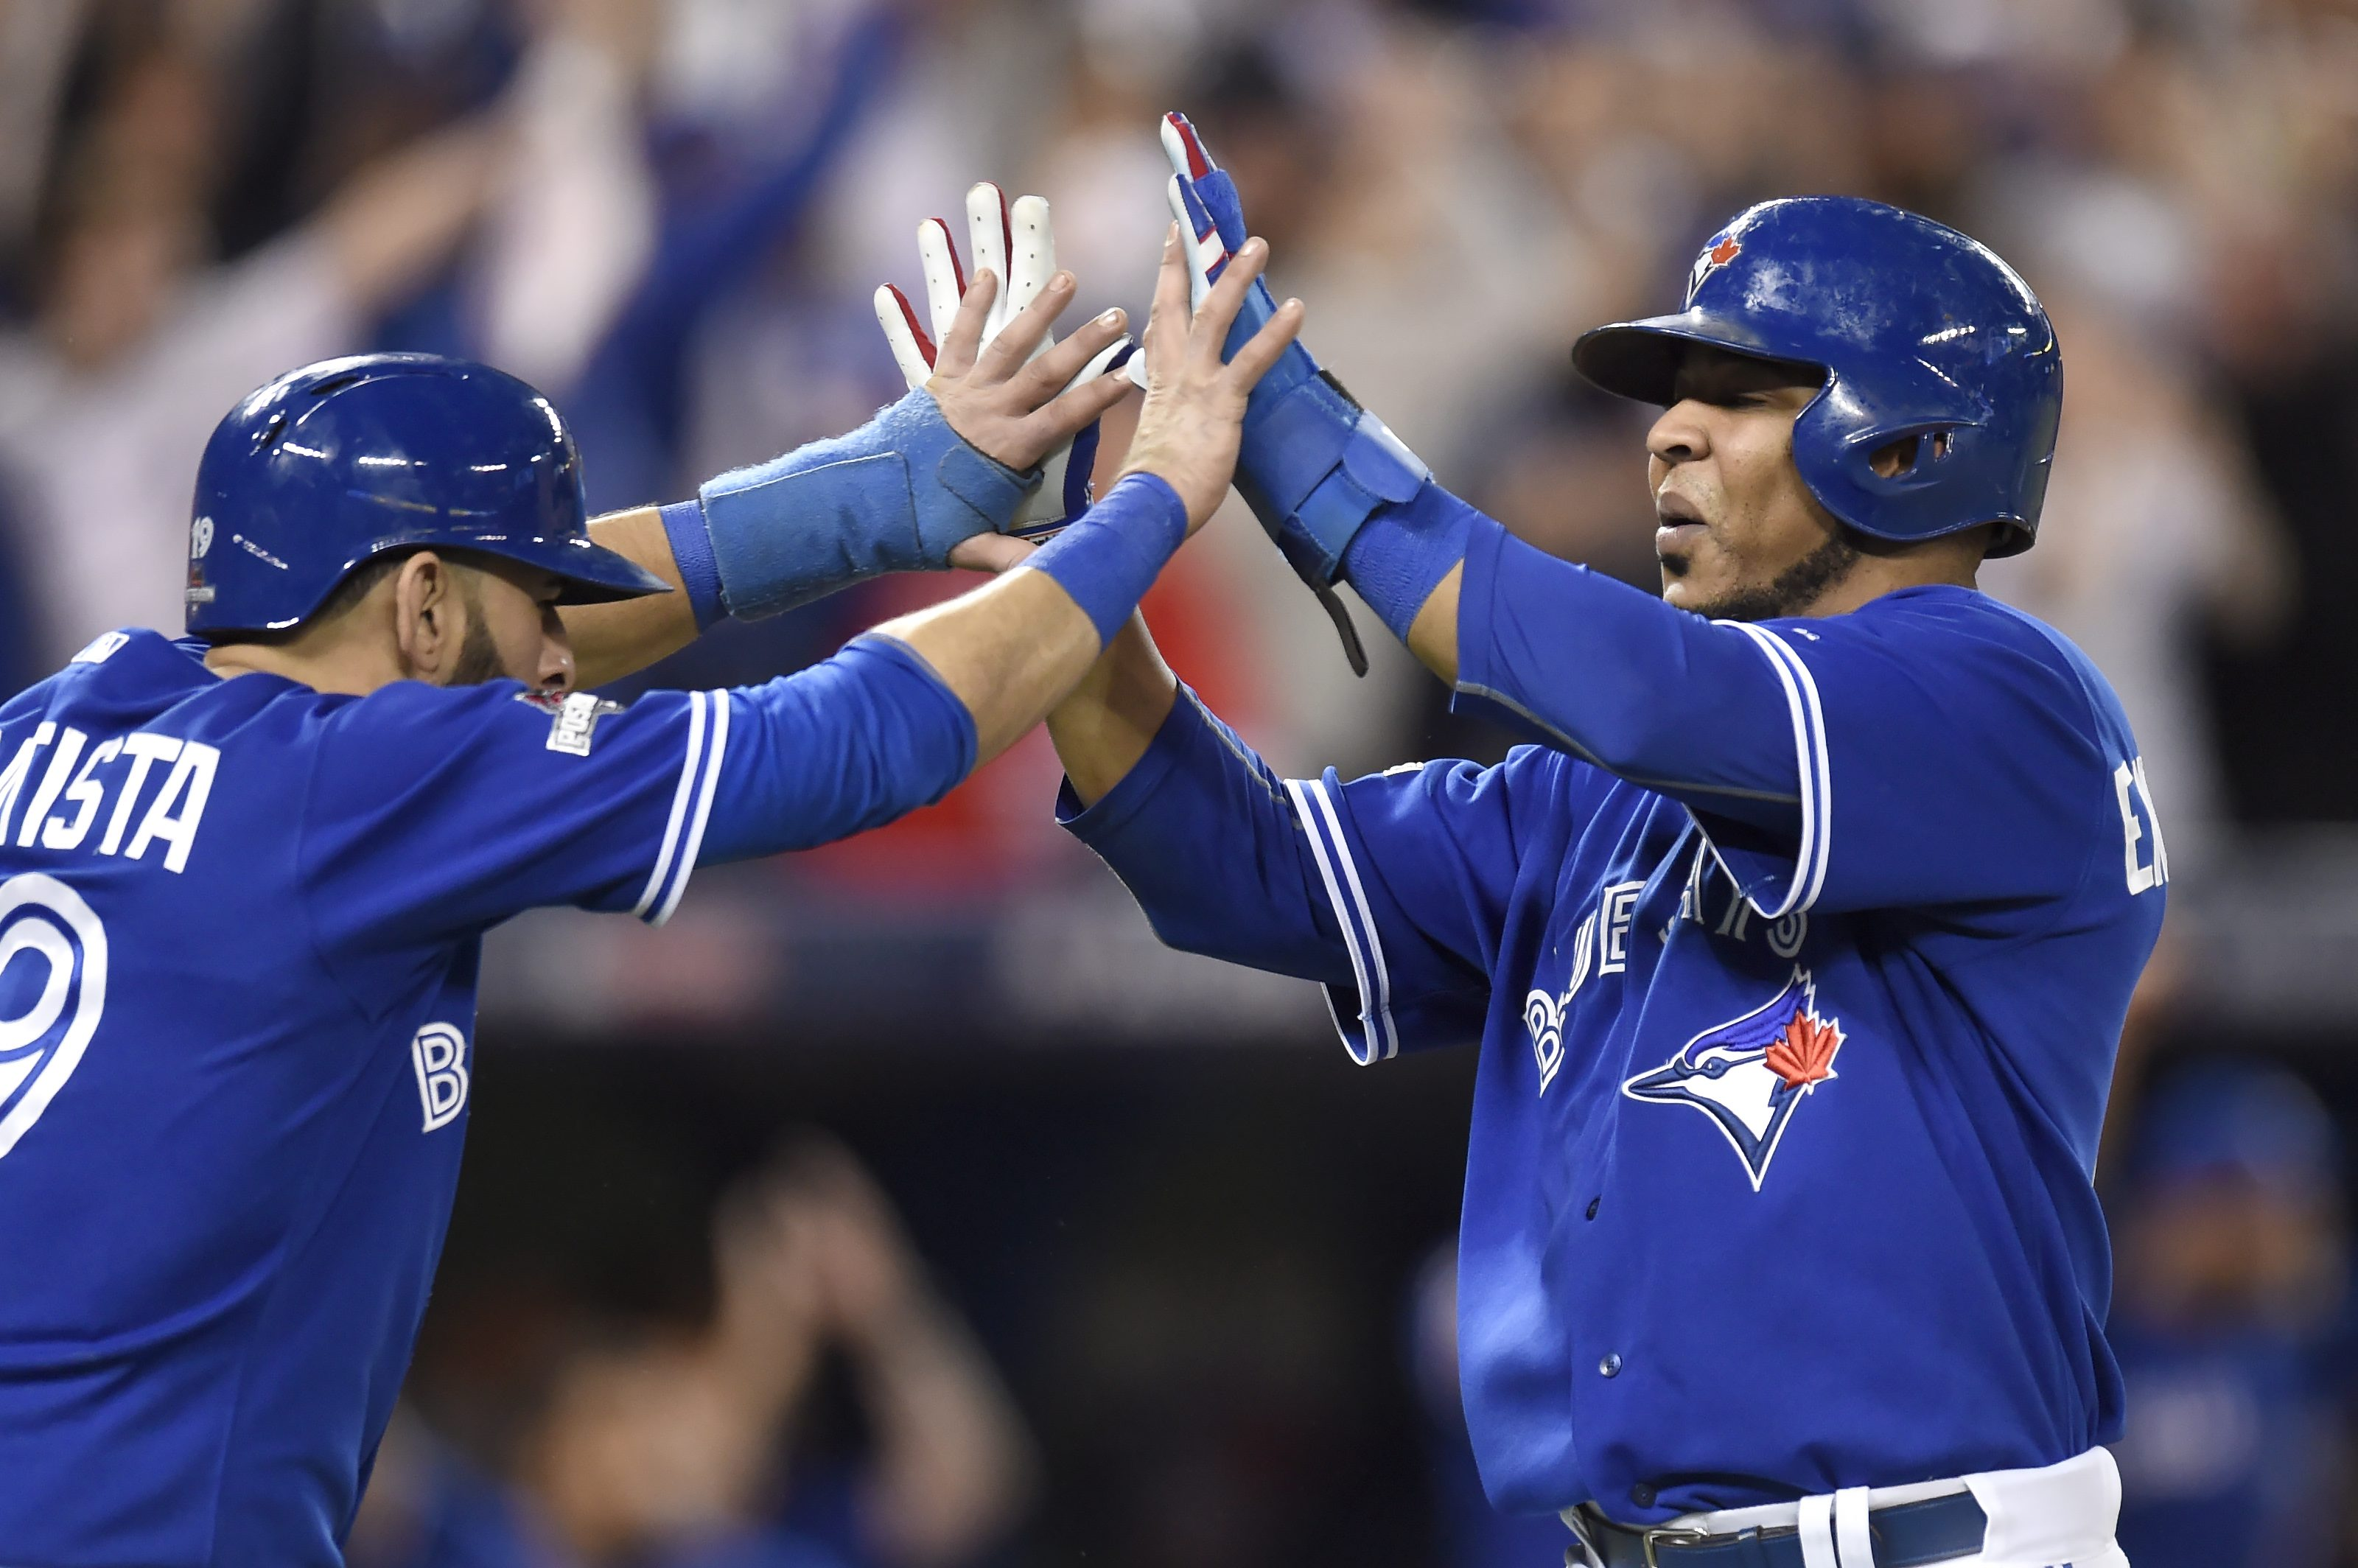 FILE - In this Wednesday, Oct. 21, 2015 file photo, Toronto Blue Jays' Jose Bautista, left, and Edwin Encarnacion celebrate after scoring on a three-run double during Game 5 of baseball's American League Championship Series in Toronto. Bautista, a six-tim